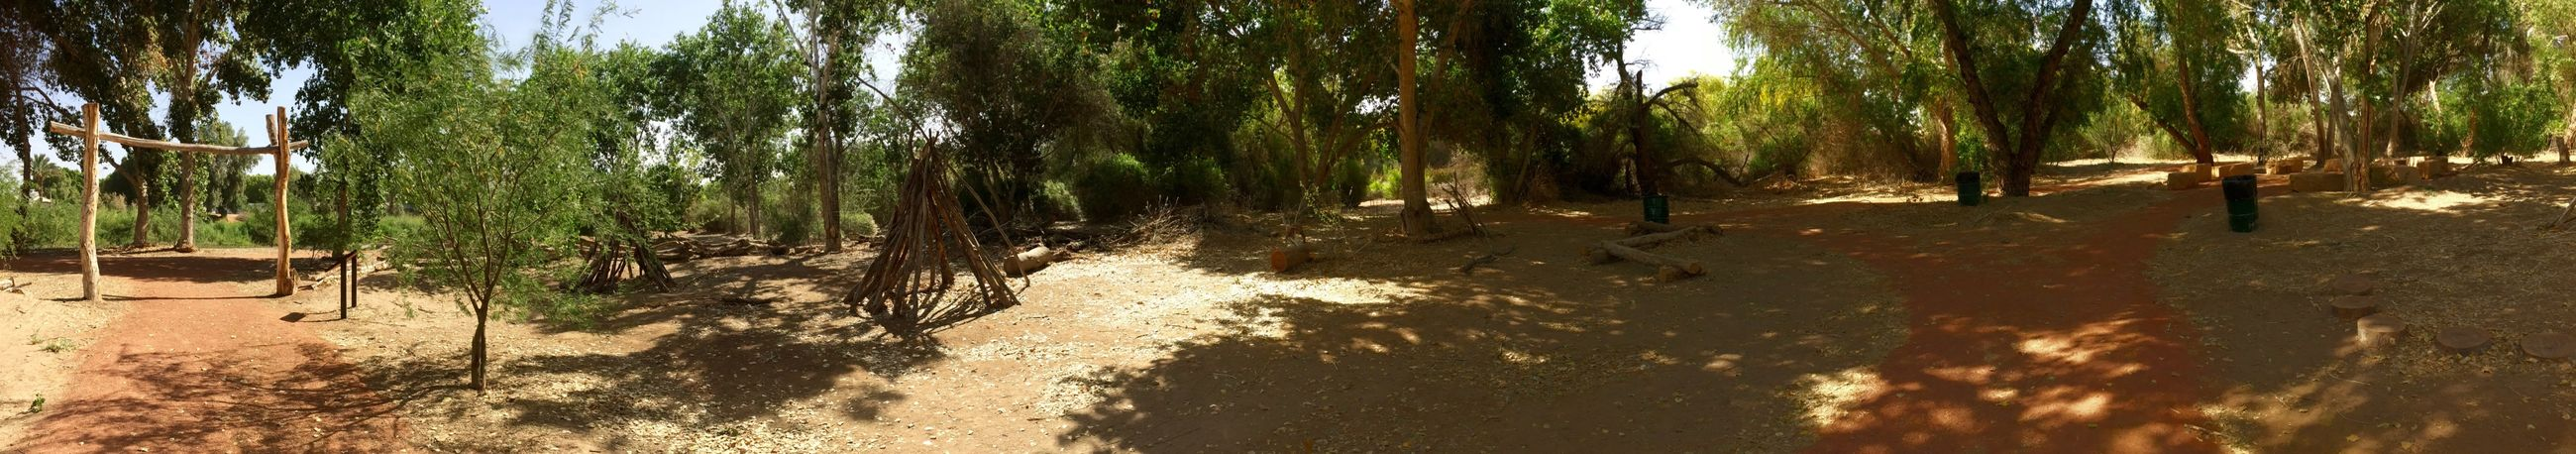 Panoramic view of sitting area on one of the trails next to the Colorado River at West Wetlands Park, Yuma, AZ.✨ West Wetlands, Yuma, AZ Nature Photography IPhone Photography Tree Plant Land Growth Forest Nature Tranquility No People Sunlight Beauty In Nature Day Tranquil Scene Green Color Outdoors Scenics - Nature Non-urban Scene Panoramic